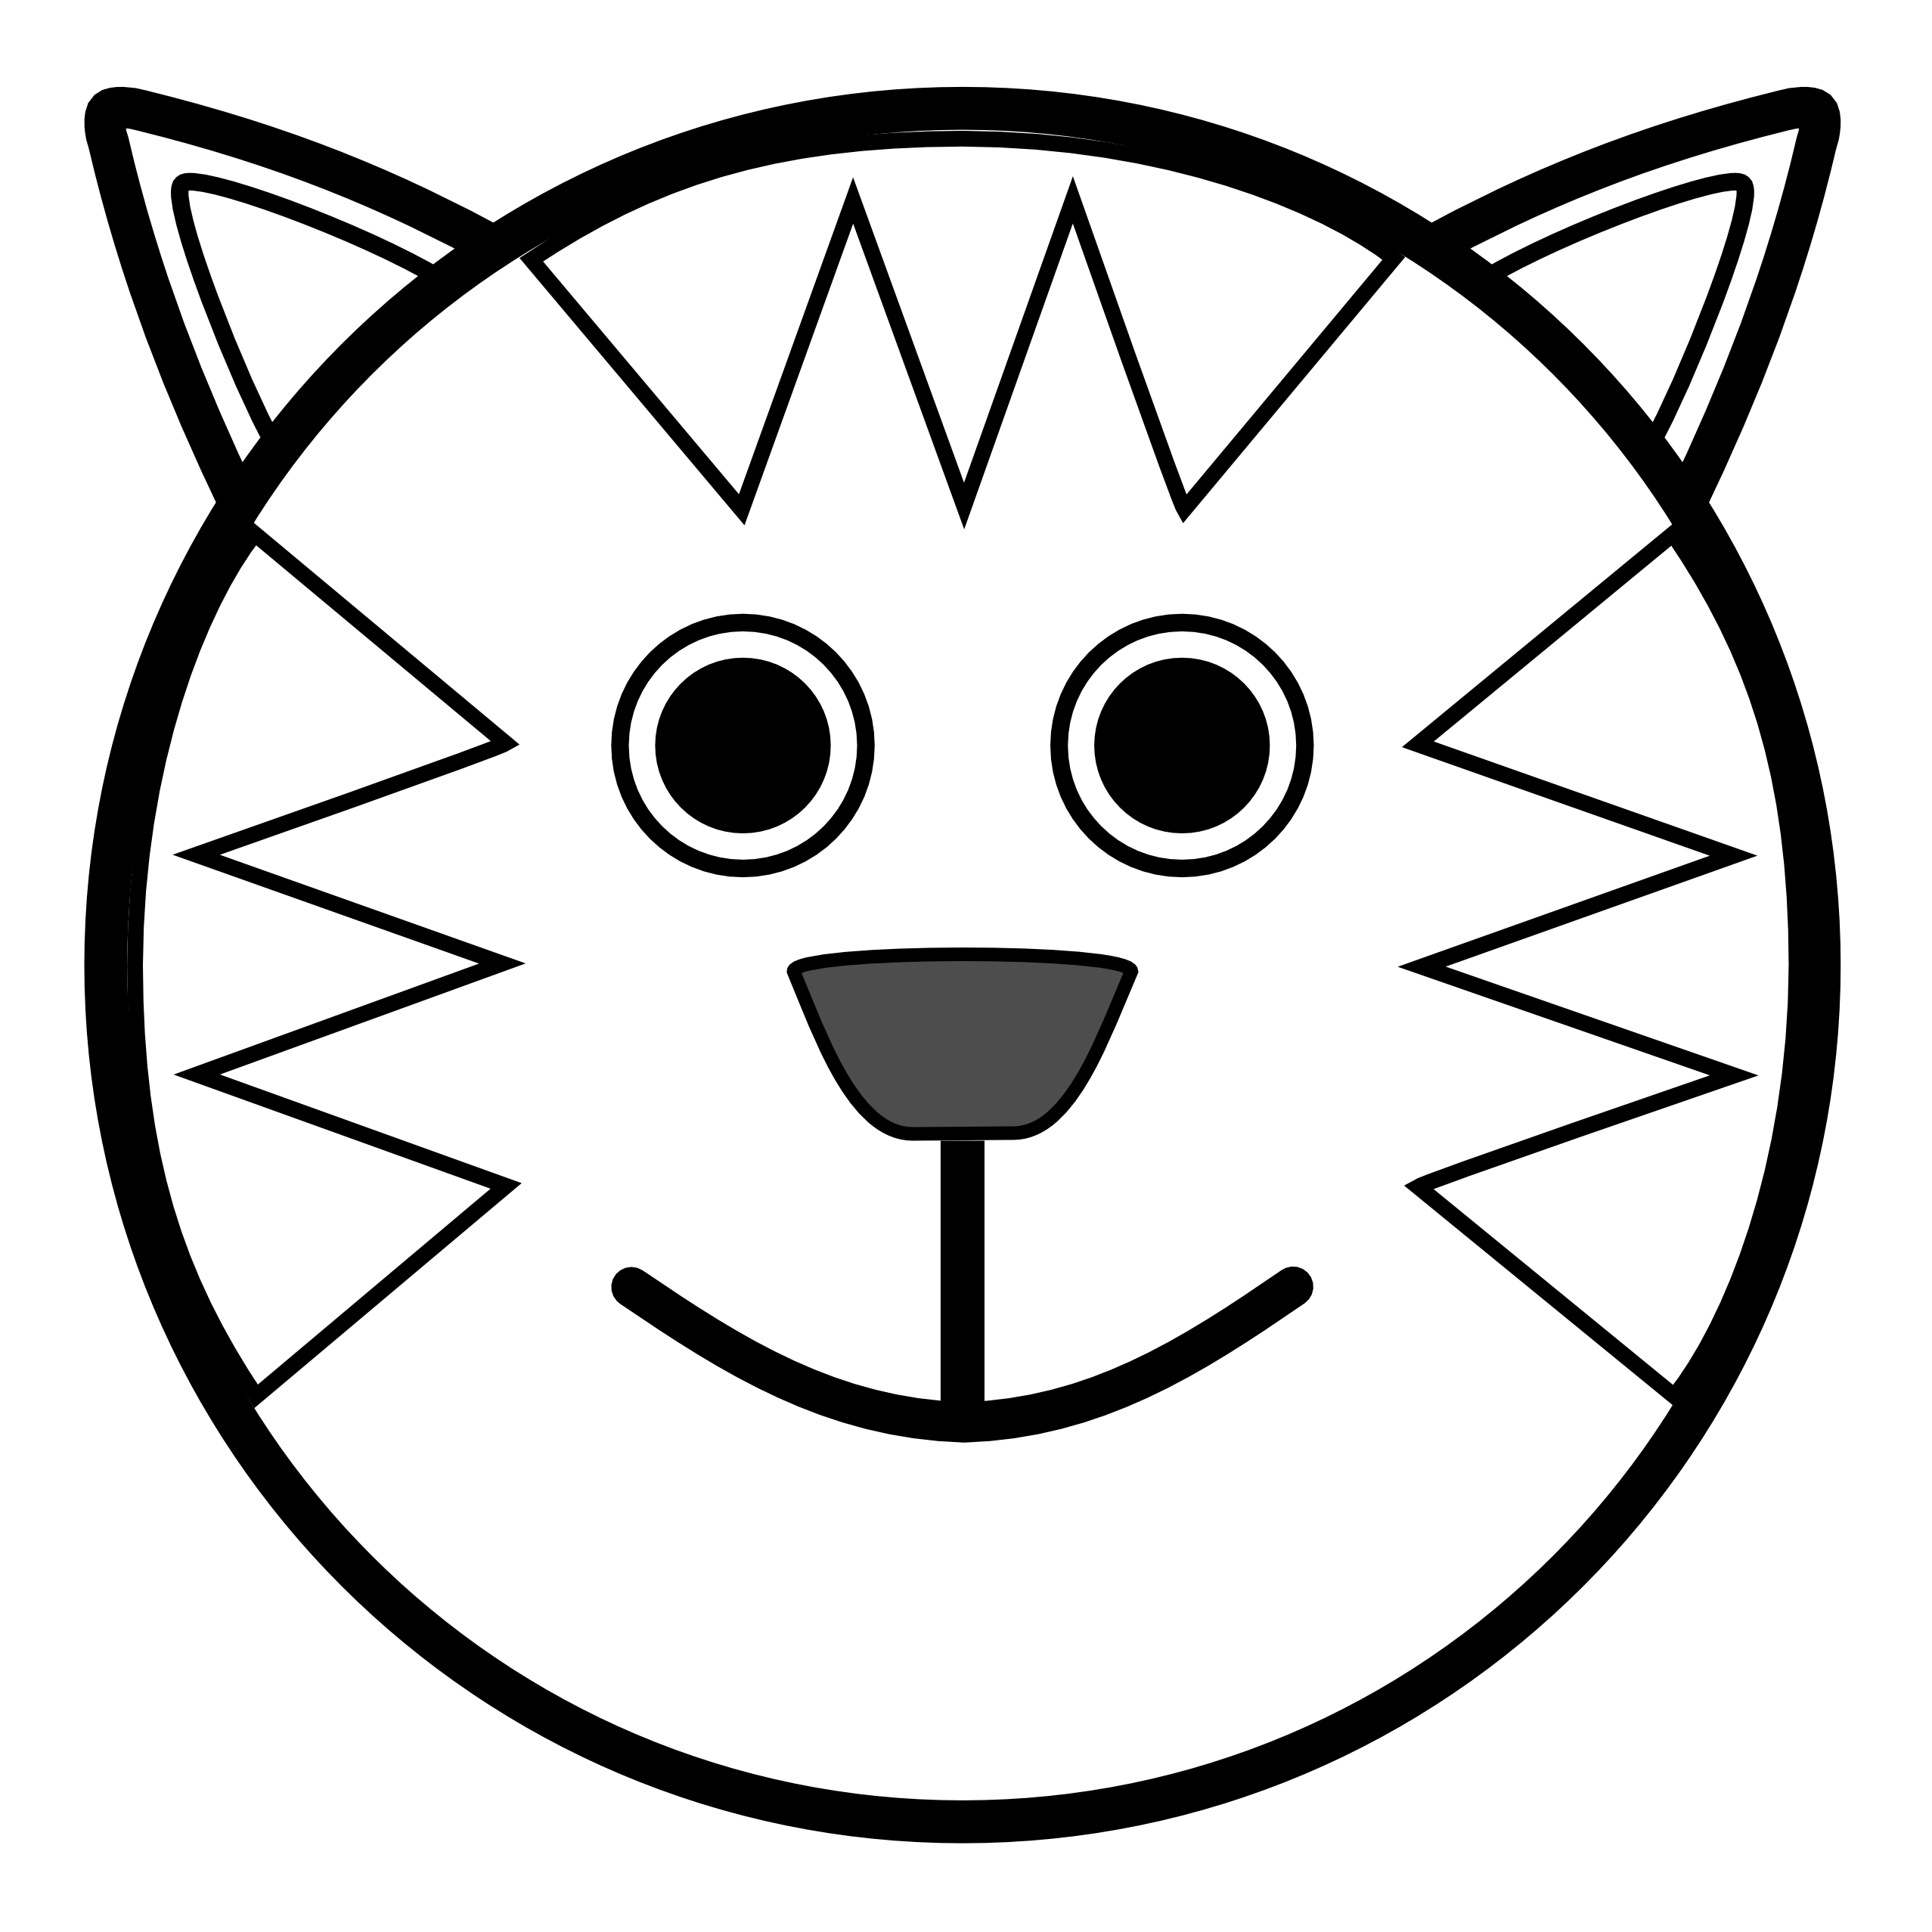 ... Black And White Clipart Animal ...-... Black and white clipart animal ...-1